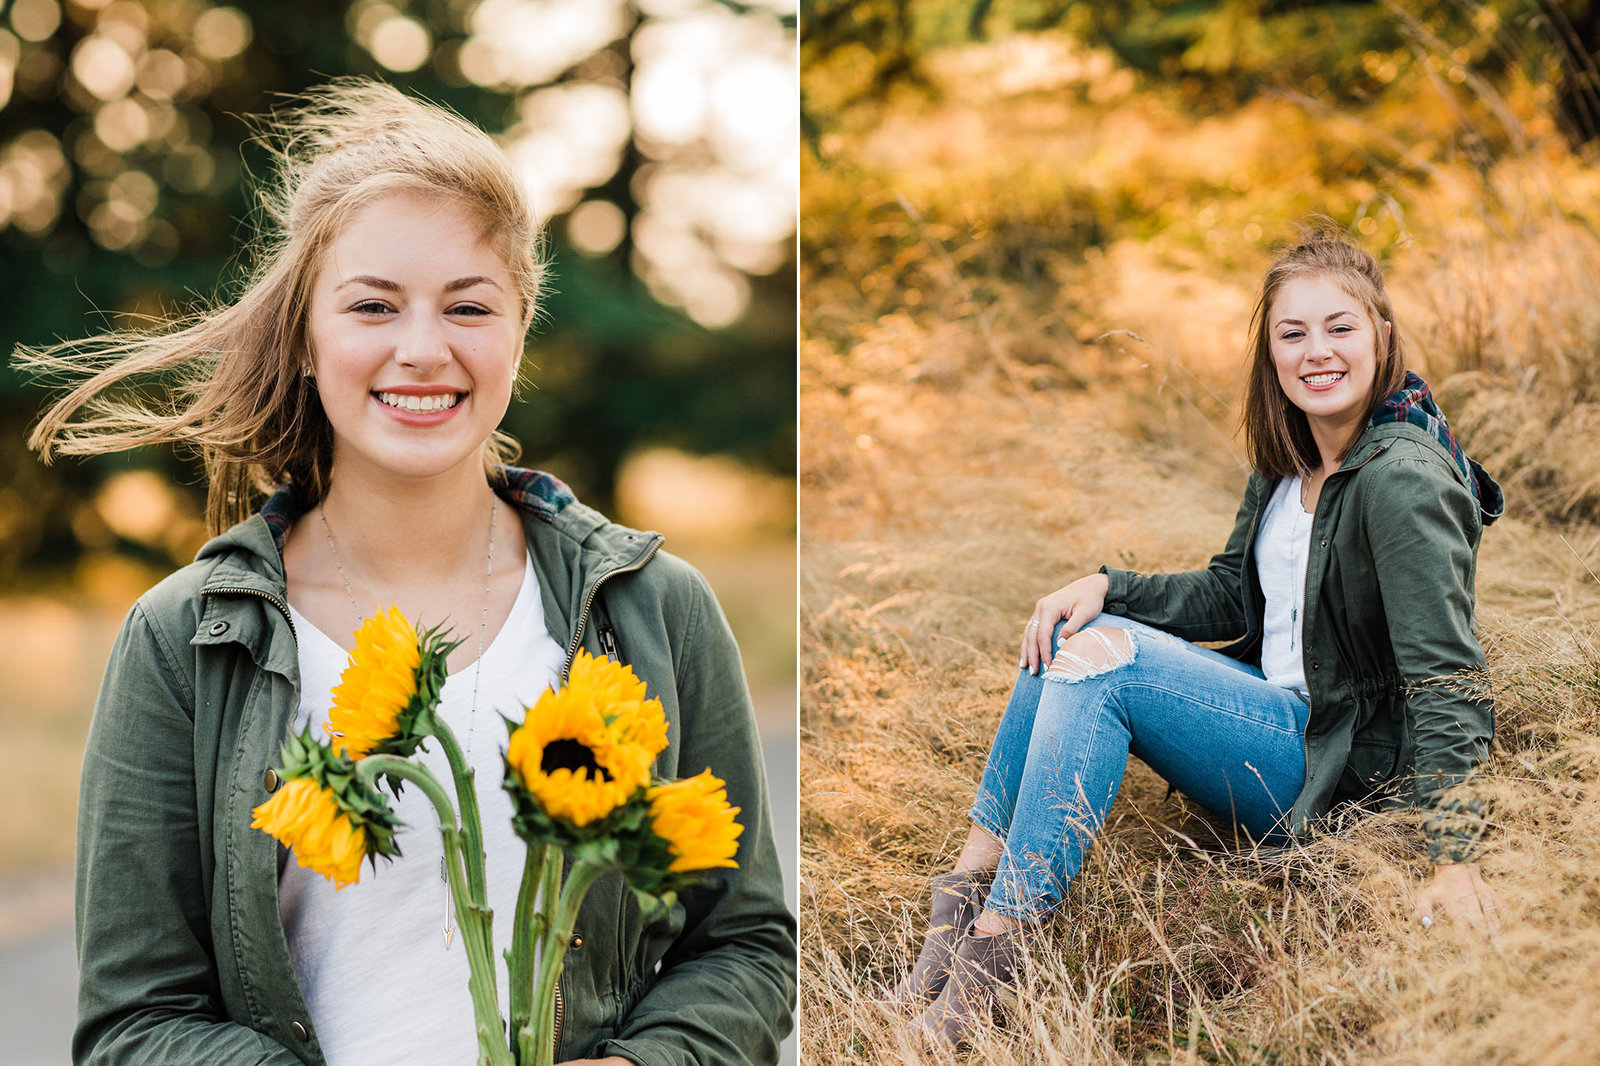 008-discovery-park-senior-photos-seattle-amy-galbraith-peyton